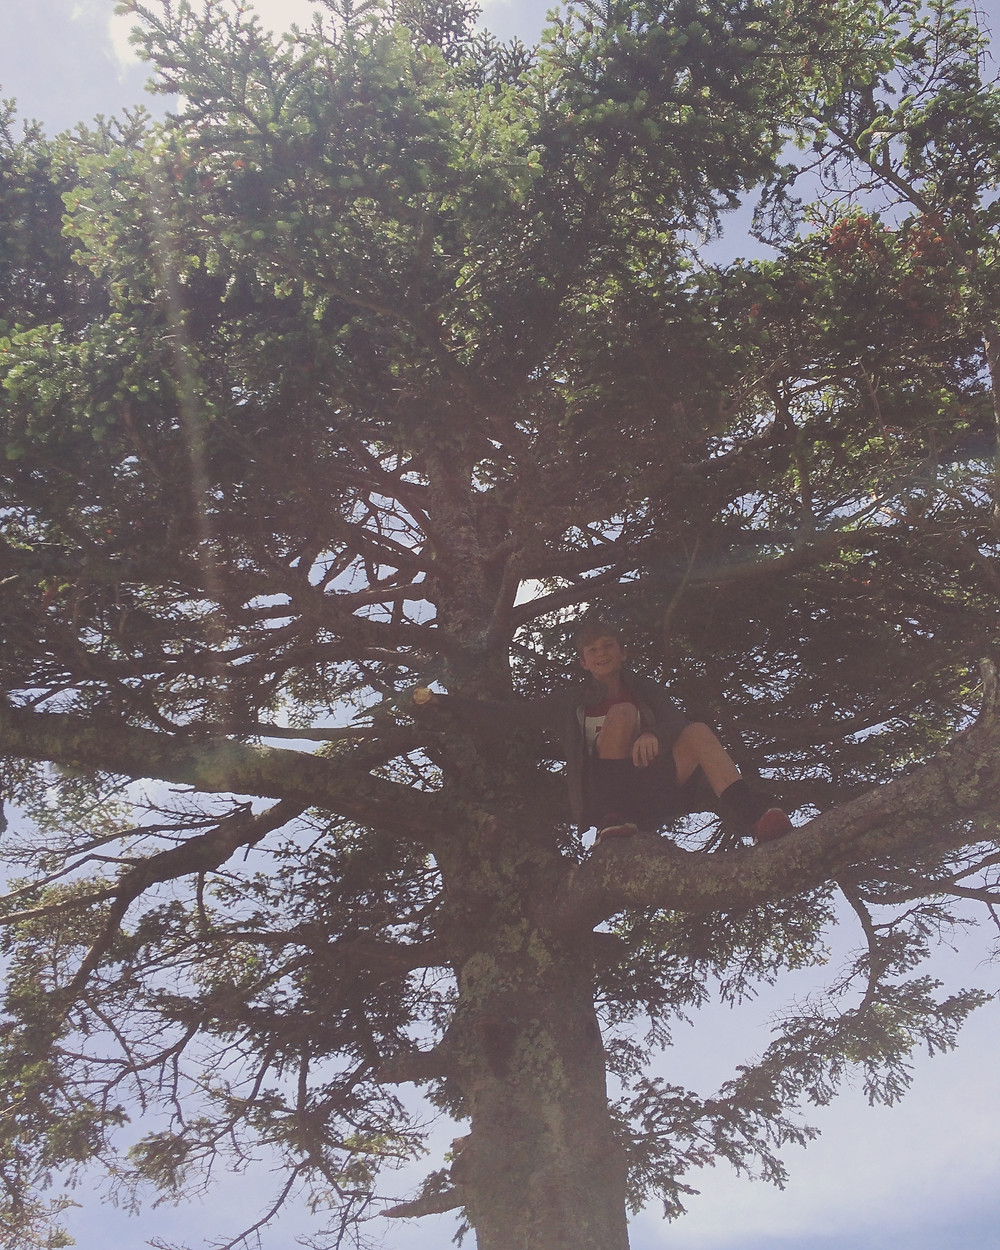 In another tree